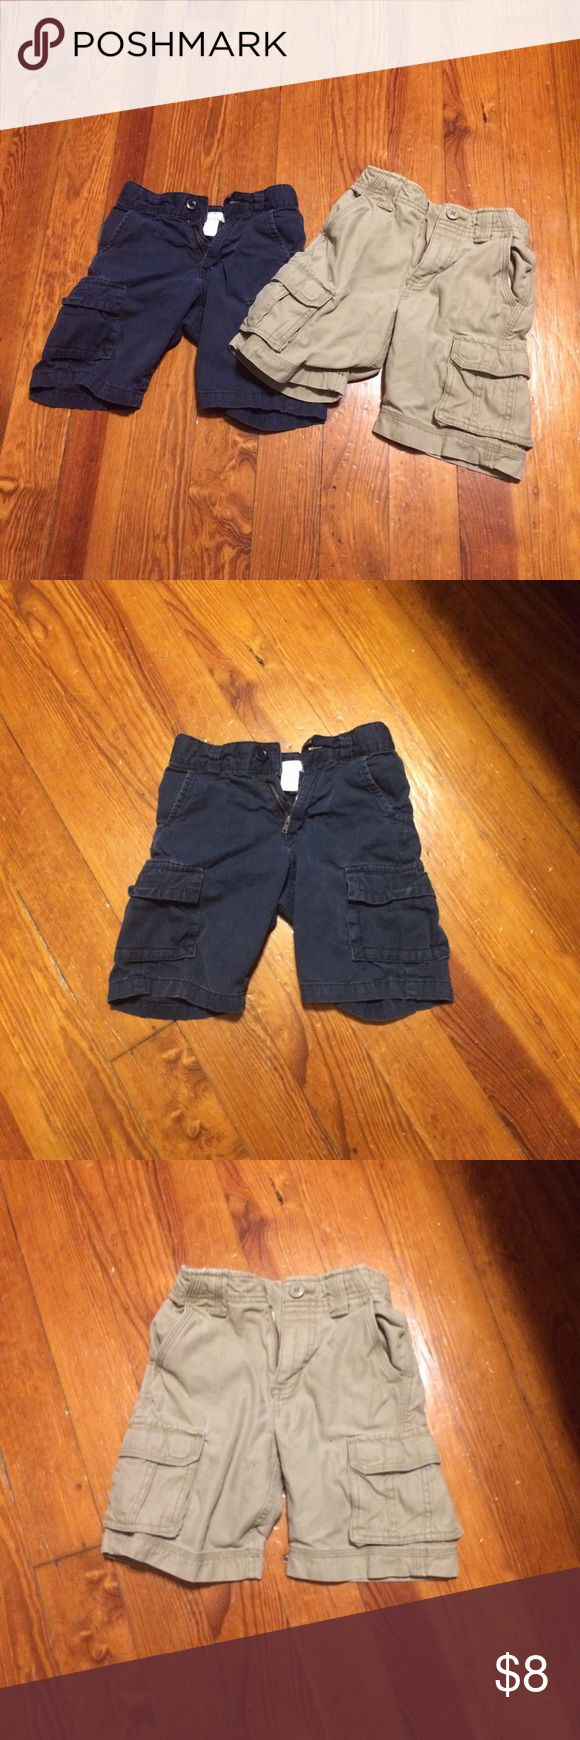 ‼️2 Pairs of Boys Cargo Shorts‼️ 🔹Boys Cargo Shorts from a smoke free home. Adjustable waist. Blue pair is Old Navy brand = 5T. The khaki pair is Arizona brand = 5 Slim. Old Navy Bottoms Jeans